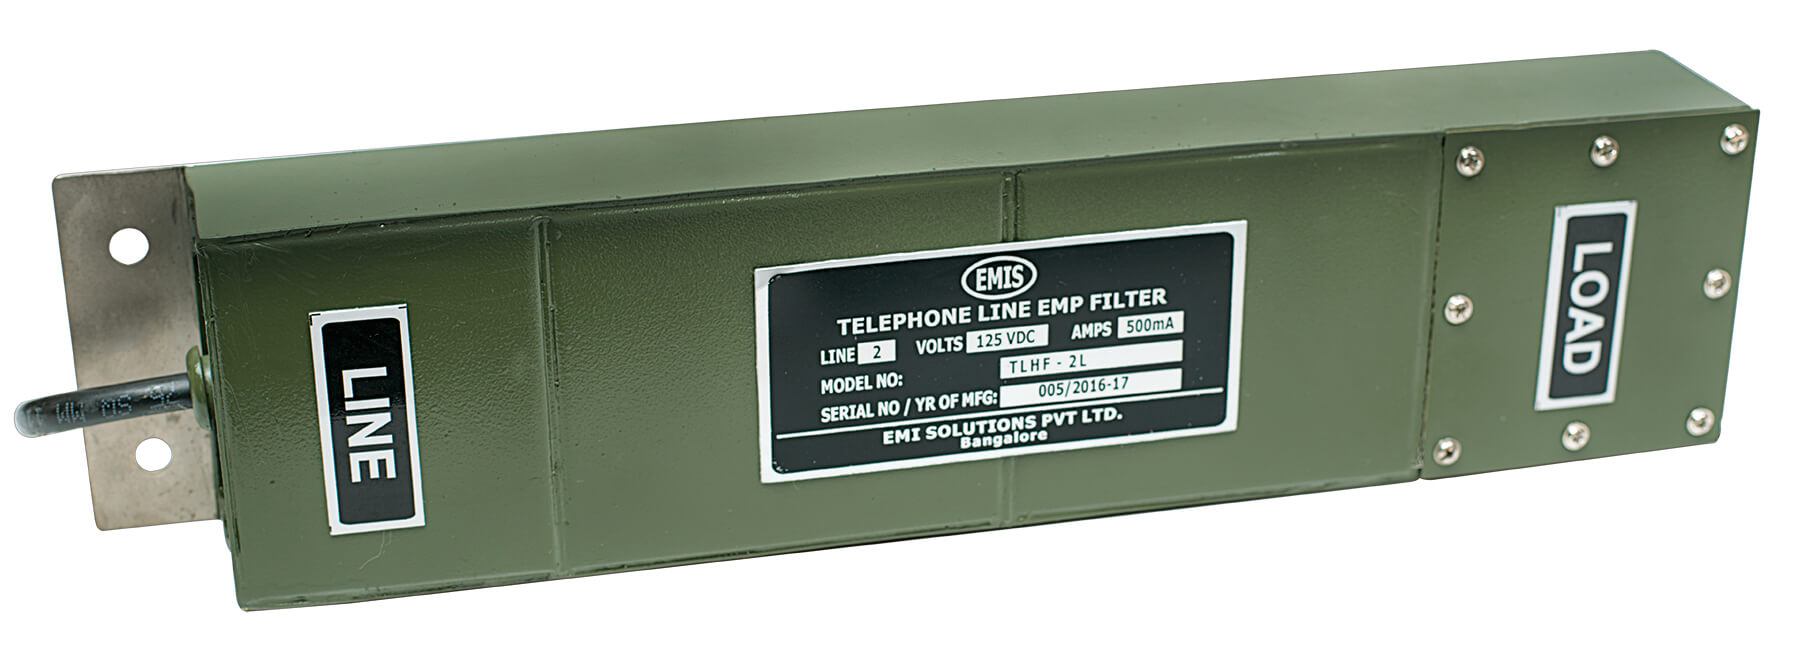 Multi Line Analogue Telephone Line HEMP Filter